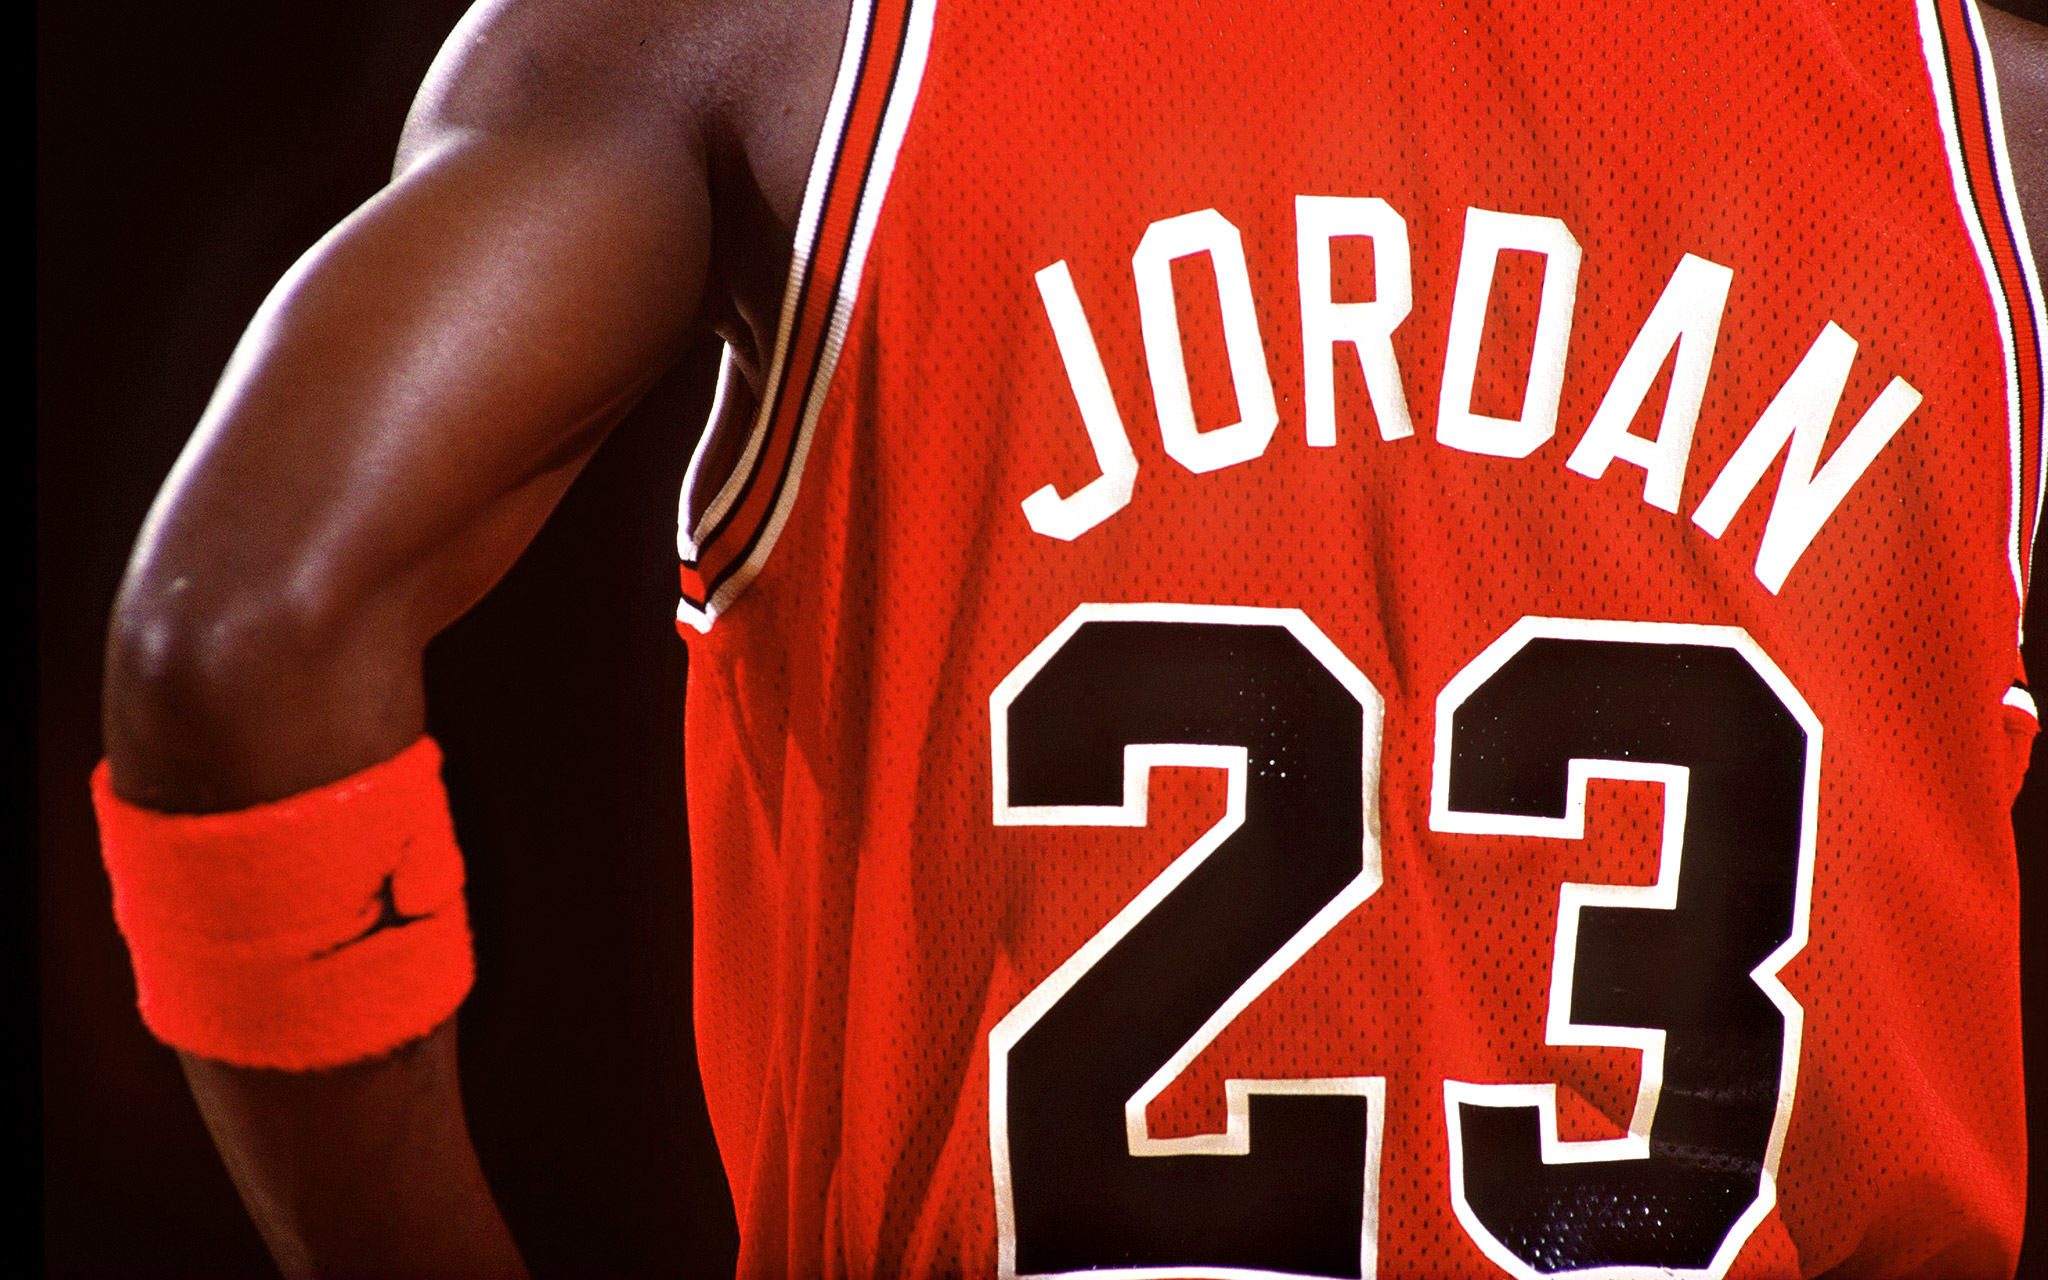 NBA Jersey Stories – La leggenda di Michael Jordan